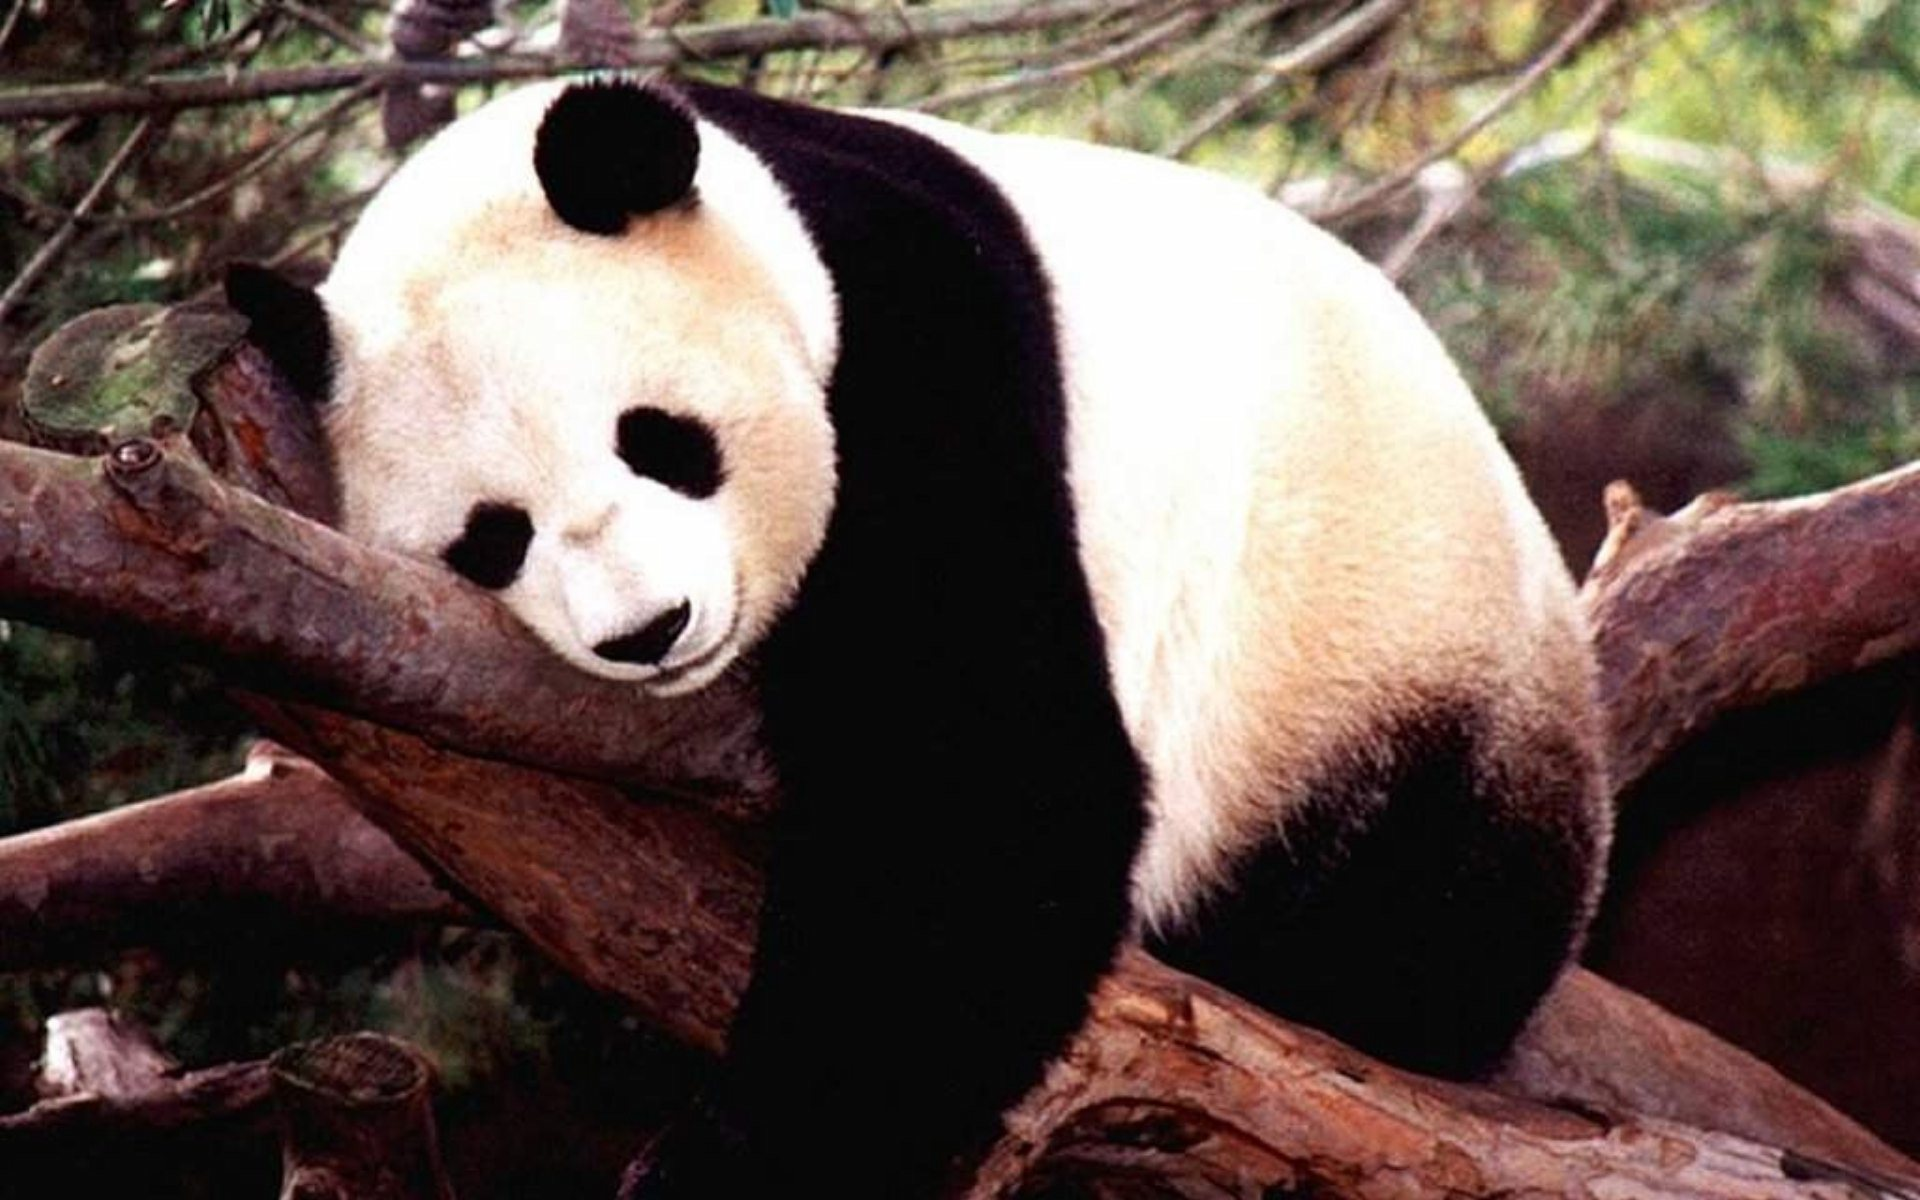 cute panda wallpapers 9366 1920x1200jpgpanda20cute201920x1200 1920x1200